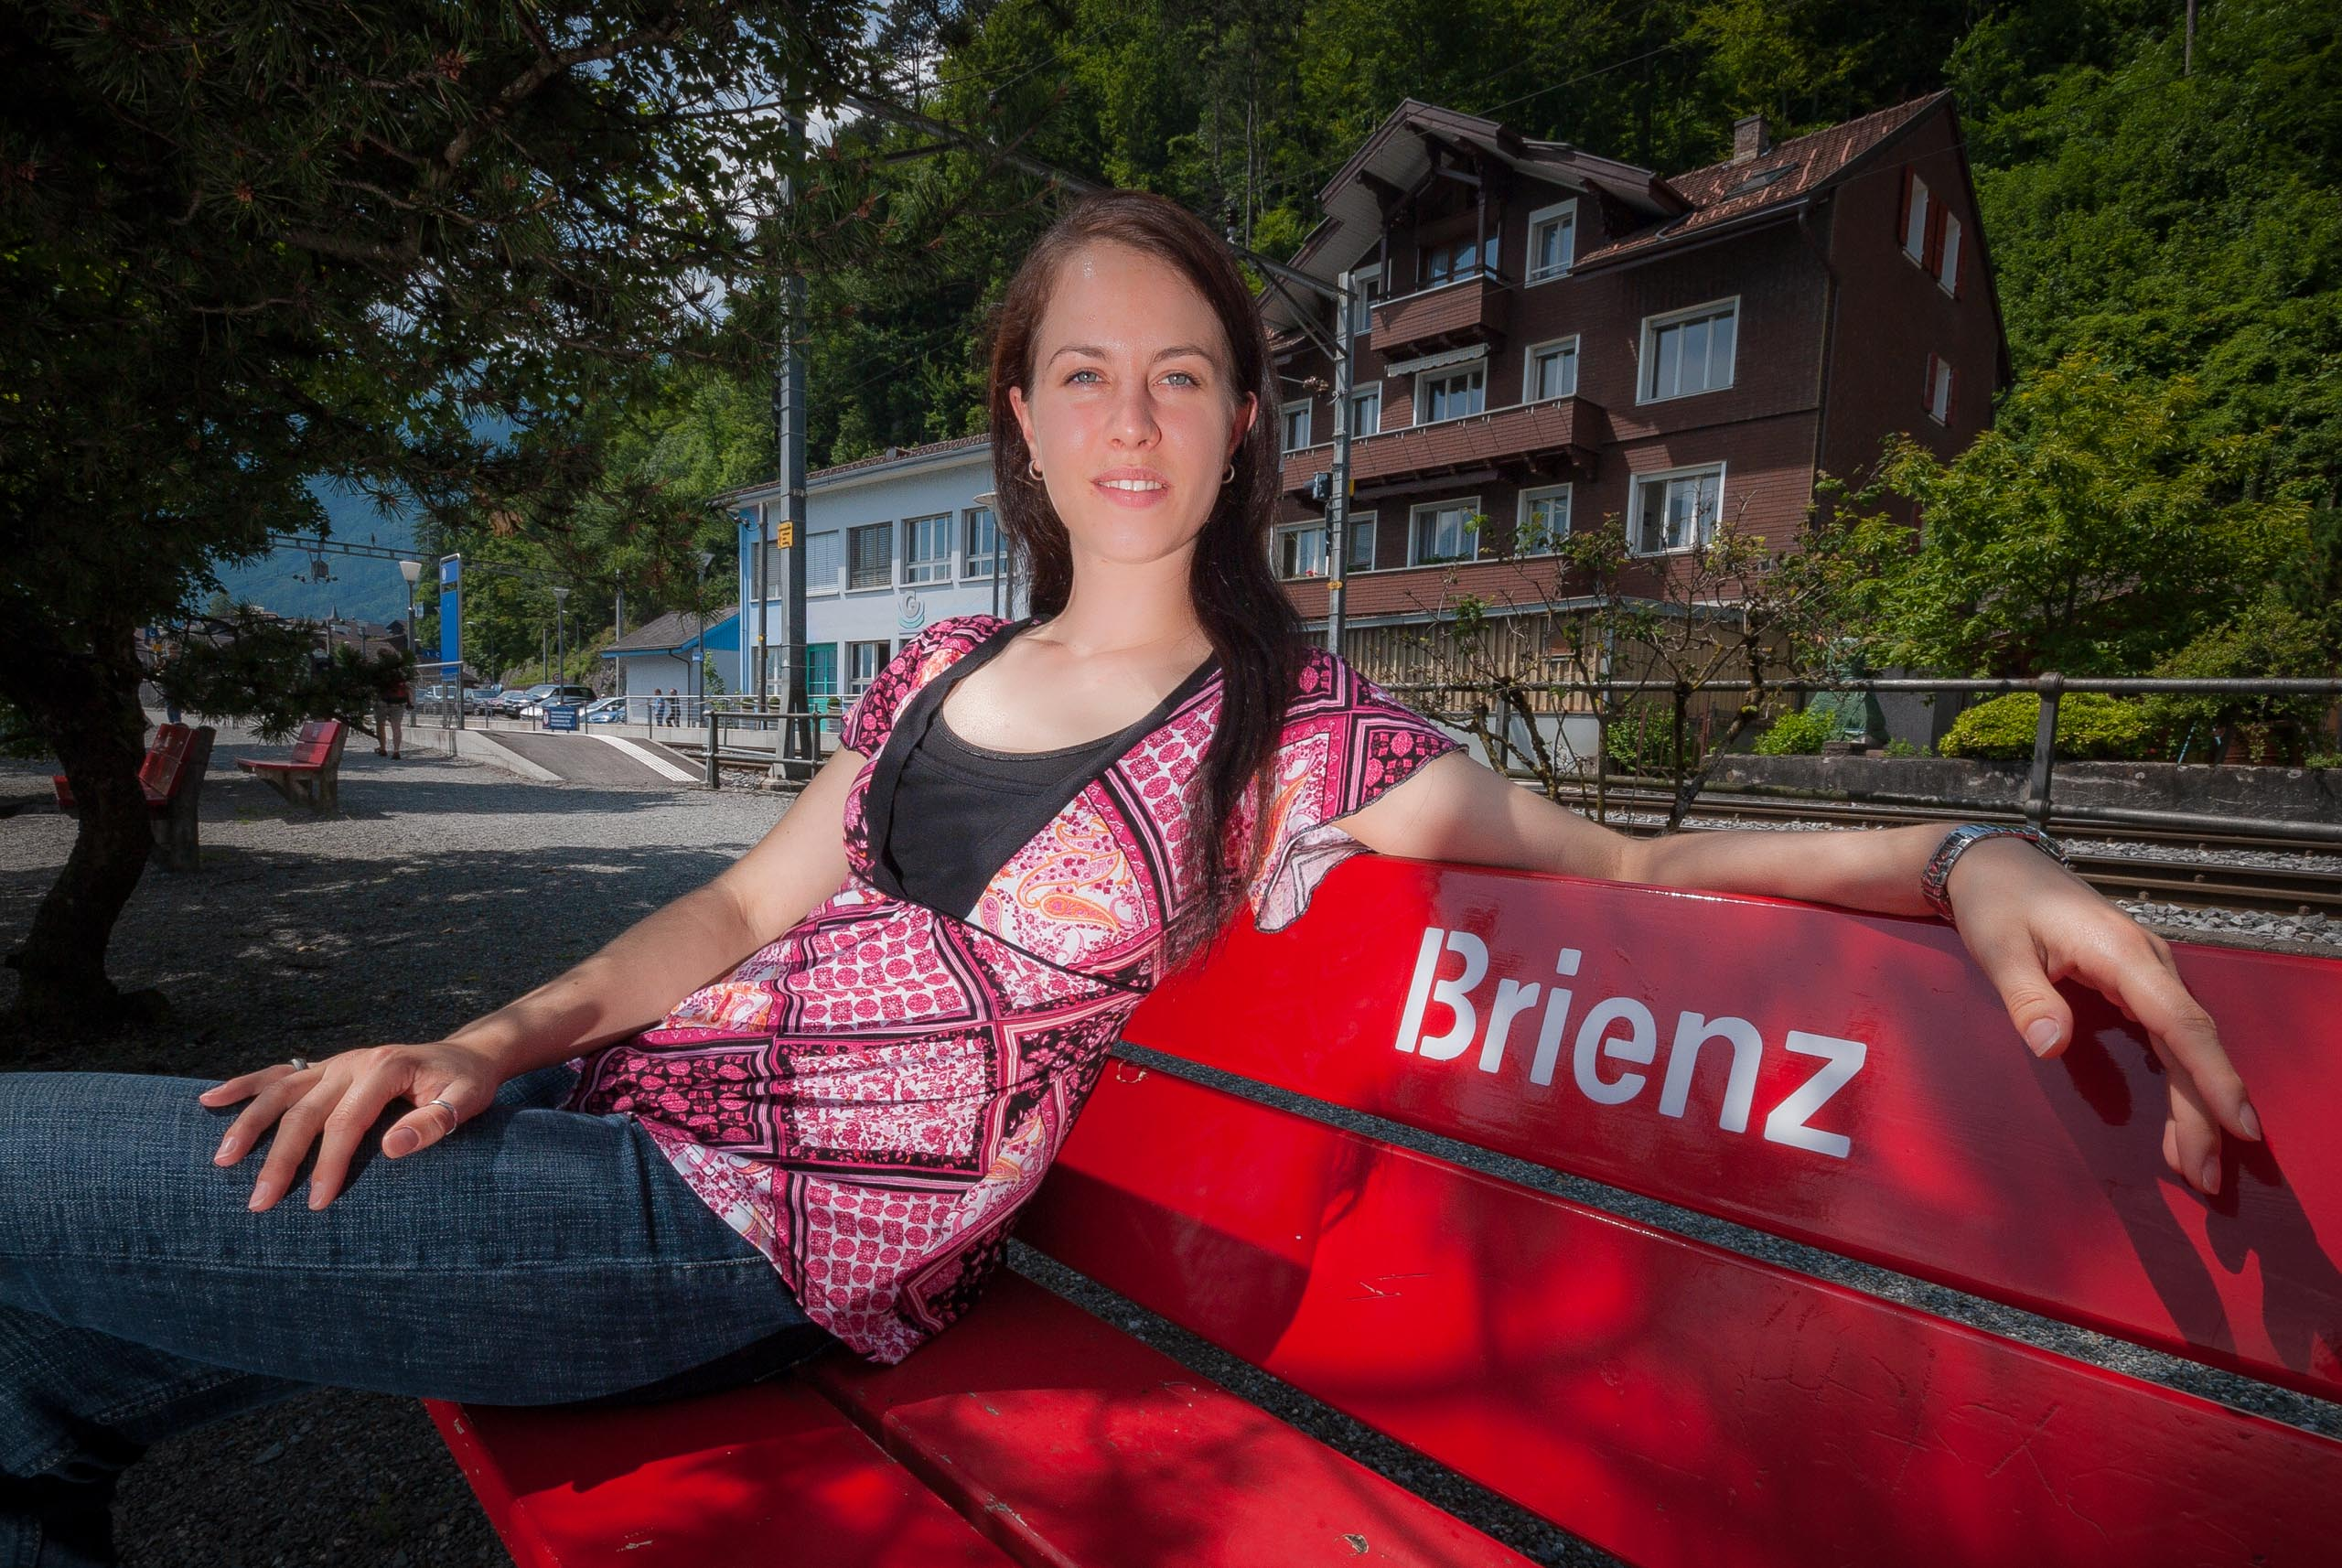 Portrait of Eva von Allmen in Brienz